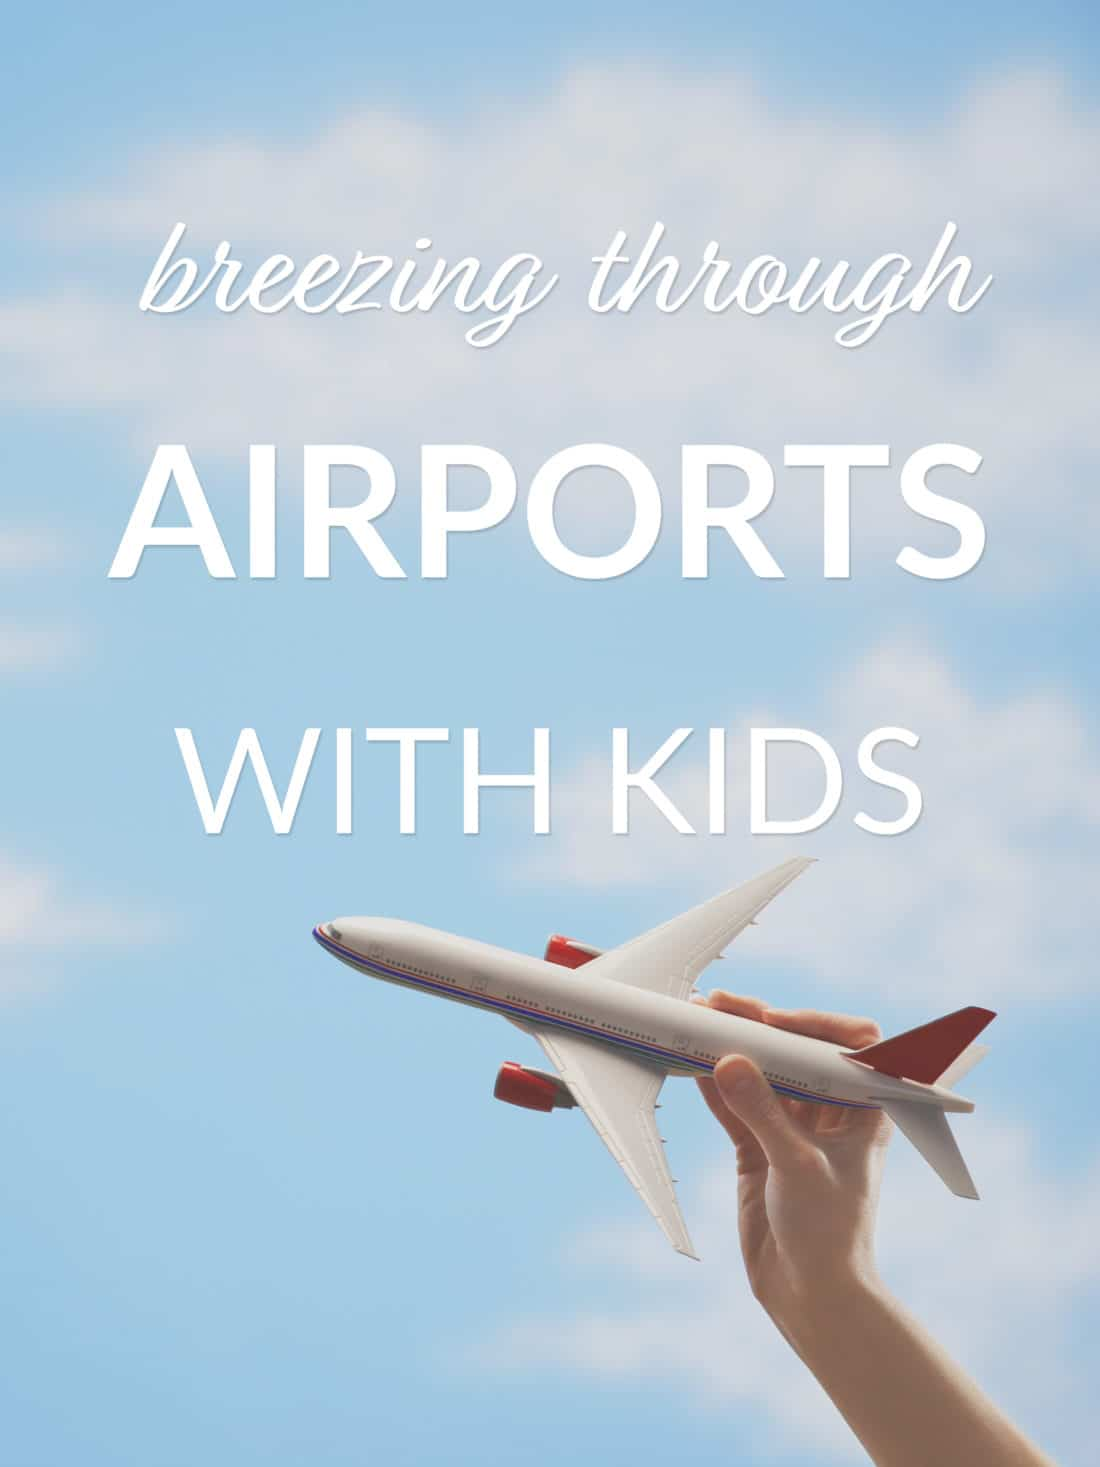 airports with kids